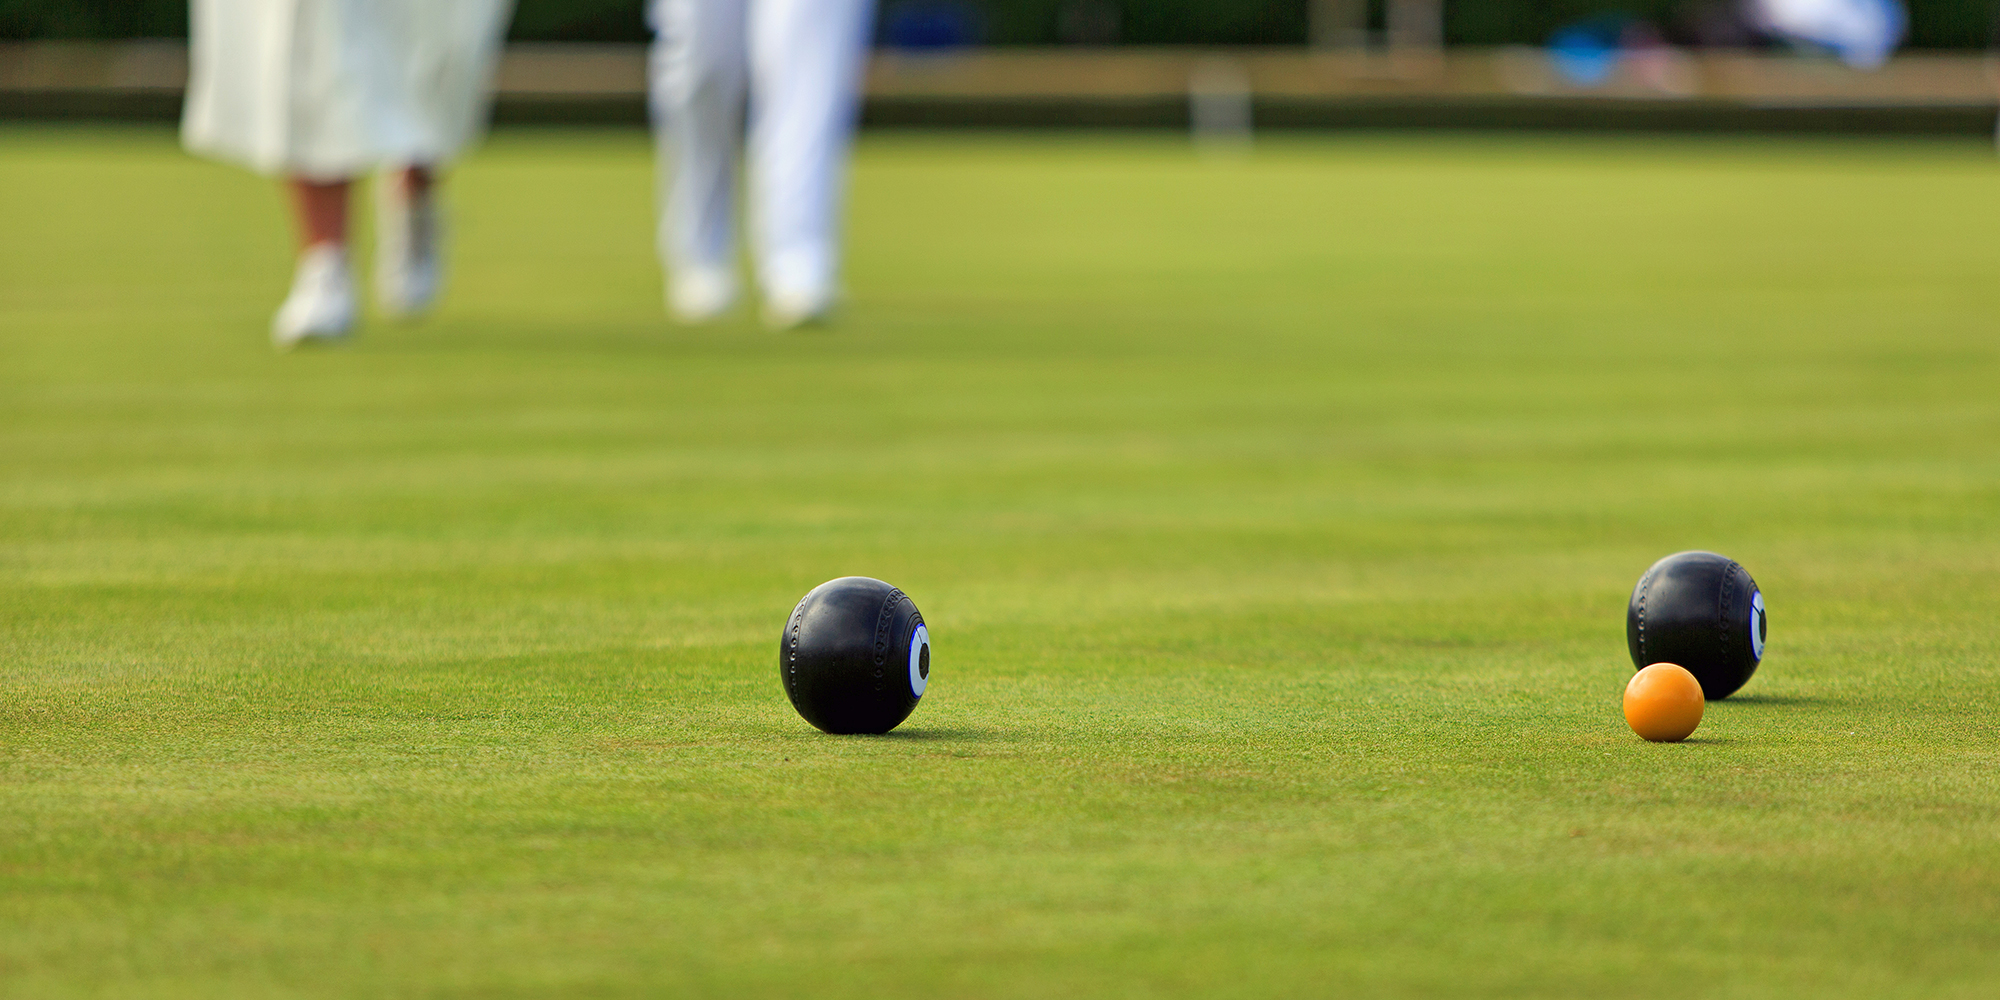 outdoor-bowls-welford-bowls-club Visiting Application Form on application to date my son, application to join a club, application database diagram, application for scholarship sample, application to rent california, application to be my boyfriend, application to join motorcycle club, application clip art, application for employment, application in spanish, application for rental, application insights, application meaning in science, application template, application approved, application trial, application service provider, application error, application cartoon,